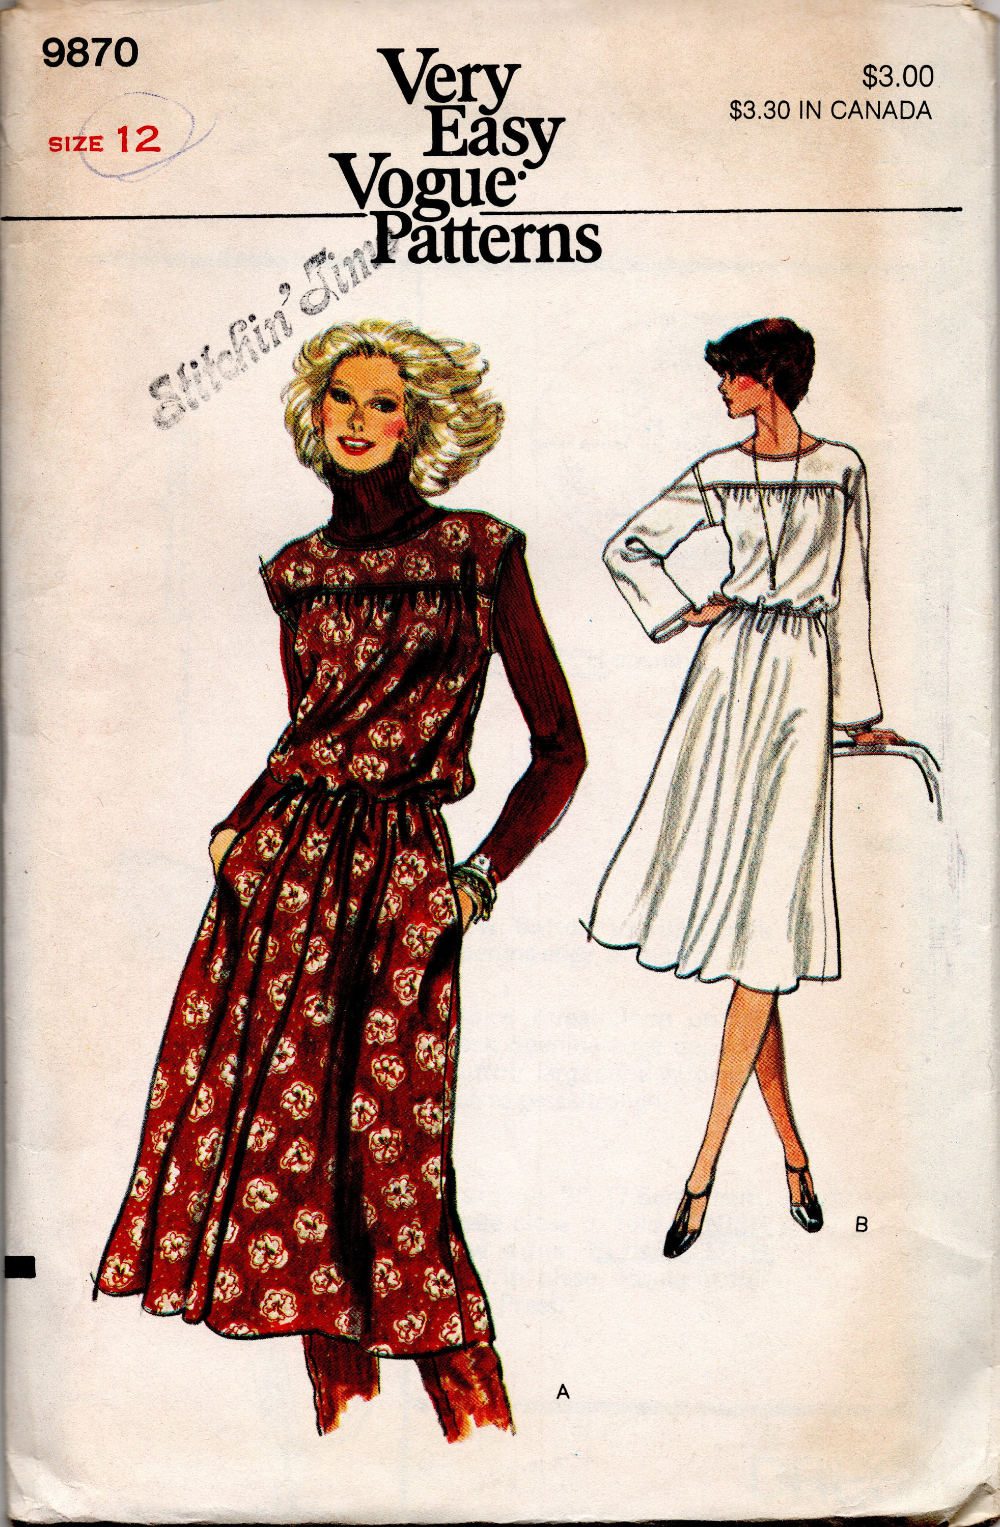 1970s Vintage Vogue Pattern Dress 9870 Size 12 Bust 34 Etsy